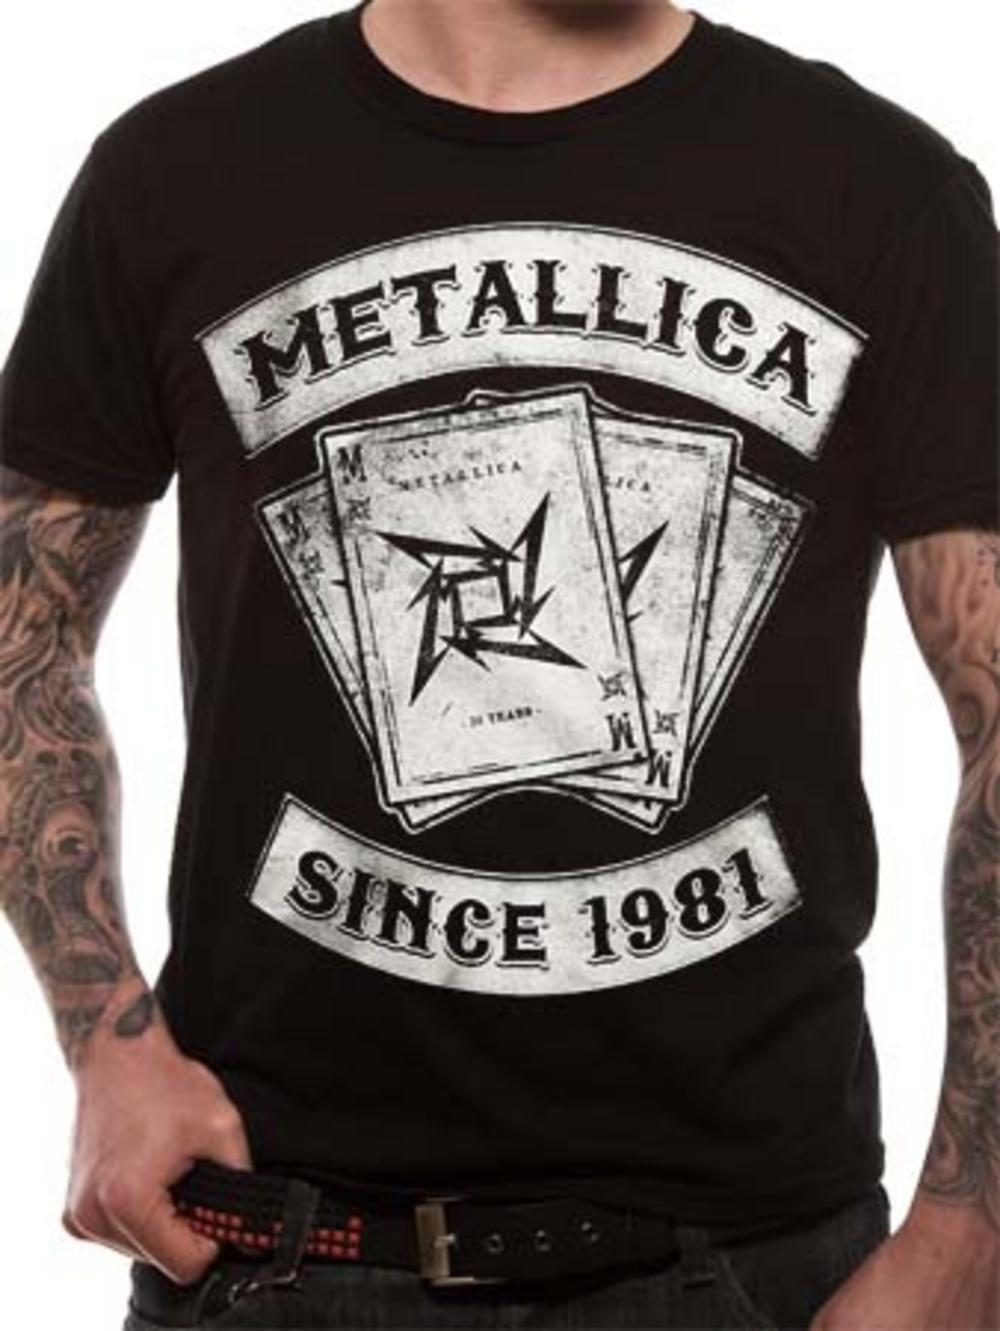 metallica dealer t shirt tm shop. Black Bedroom Furniture Sets. Home Design Ideas